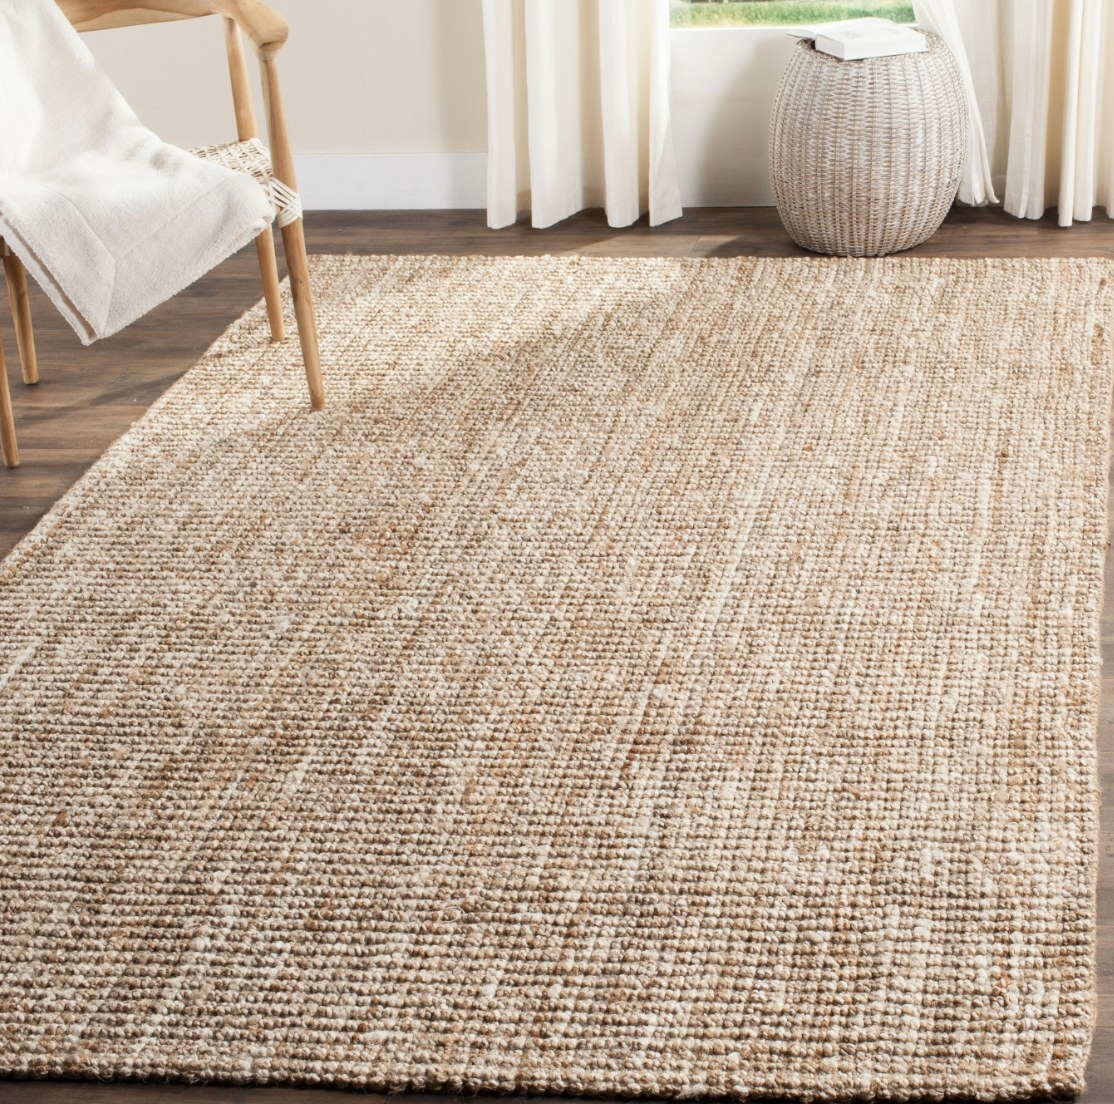 The natural colored loom rug is on a dark brown wooden floor